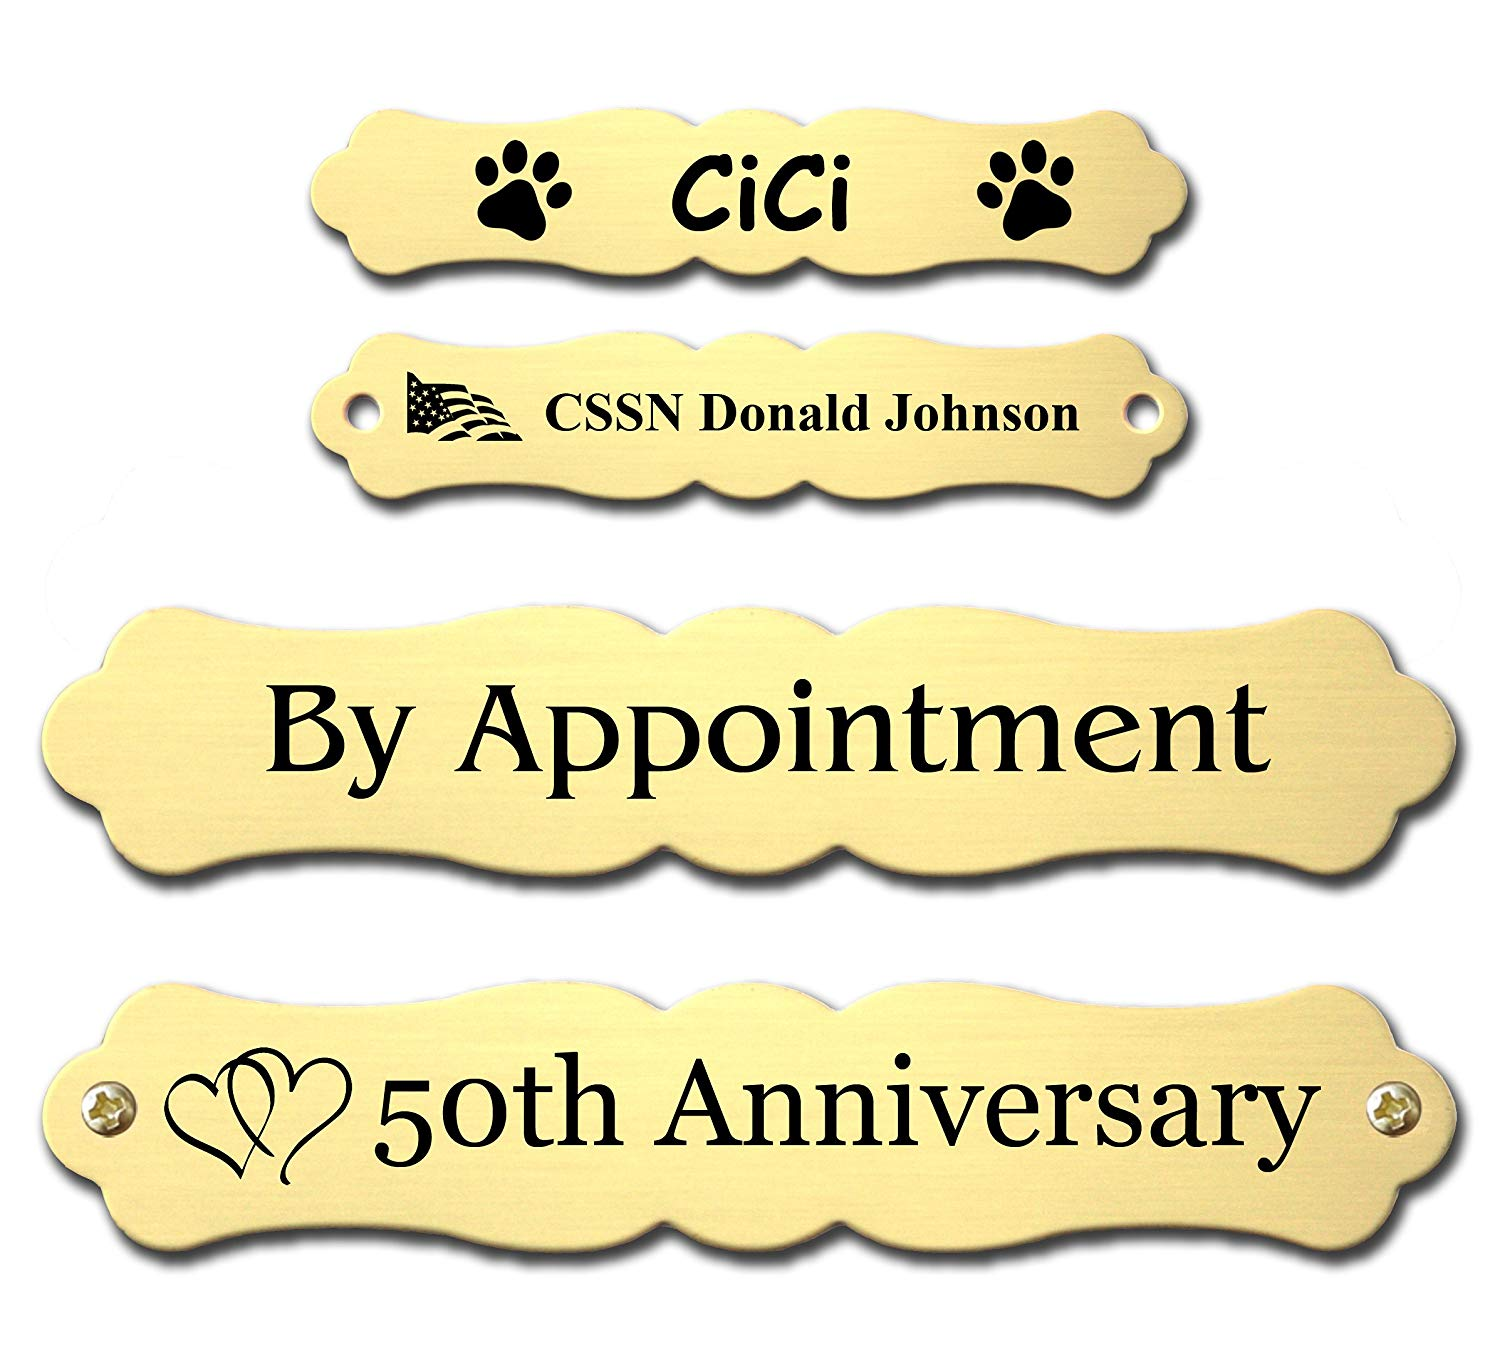 """Custom Engraved Ornate Name Plates, Brass, or Nickel Silver Metal Plate, Personalized, Custom Name Tag, Name Plaque, for Memorial, Sign, Gift, Decoration, Made in USA (Bright Gold, 25/32""""x4-1/32"""")"""